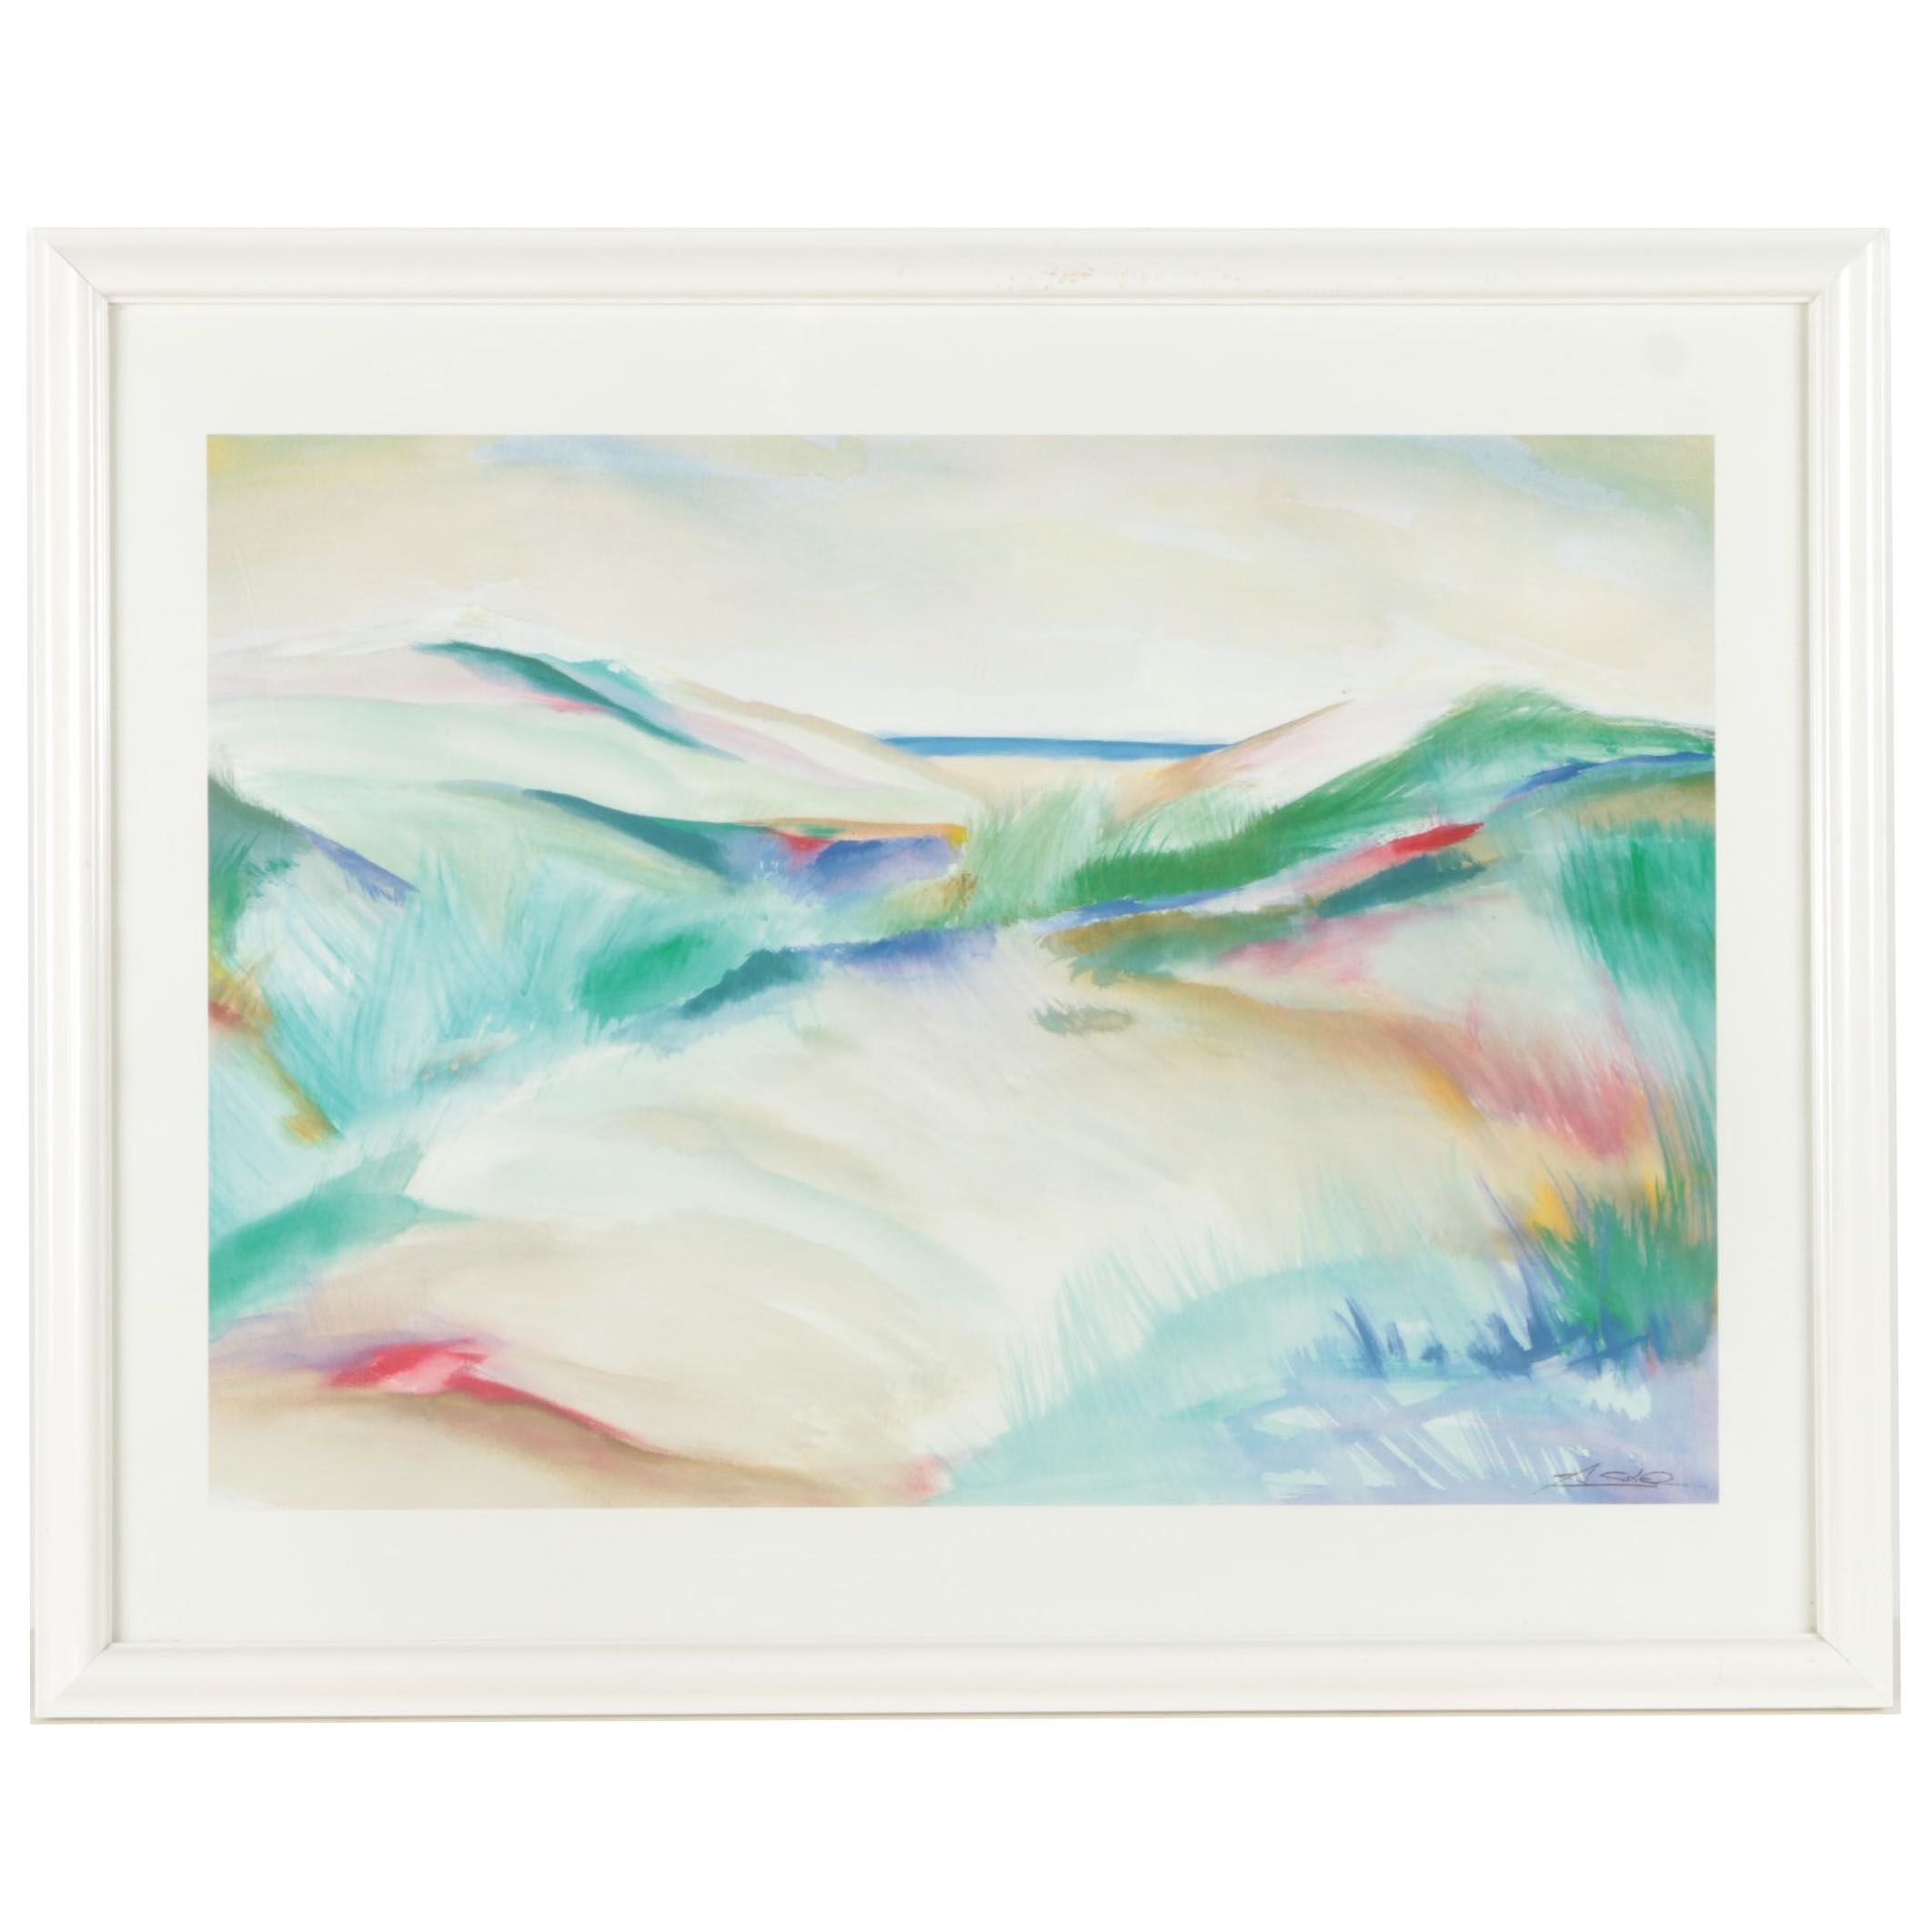 Offset Lithograph After Abstract Landscape Painting